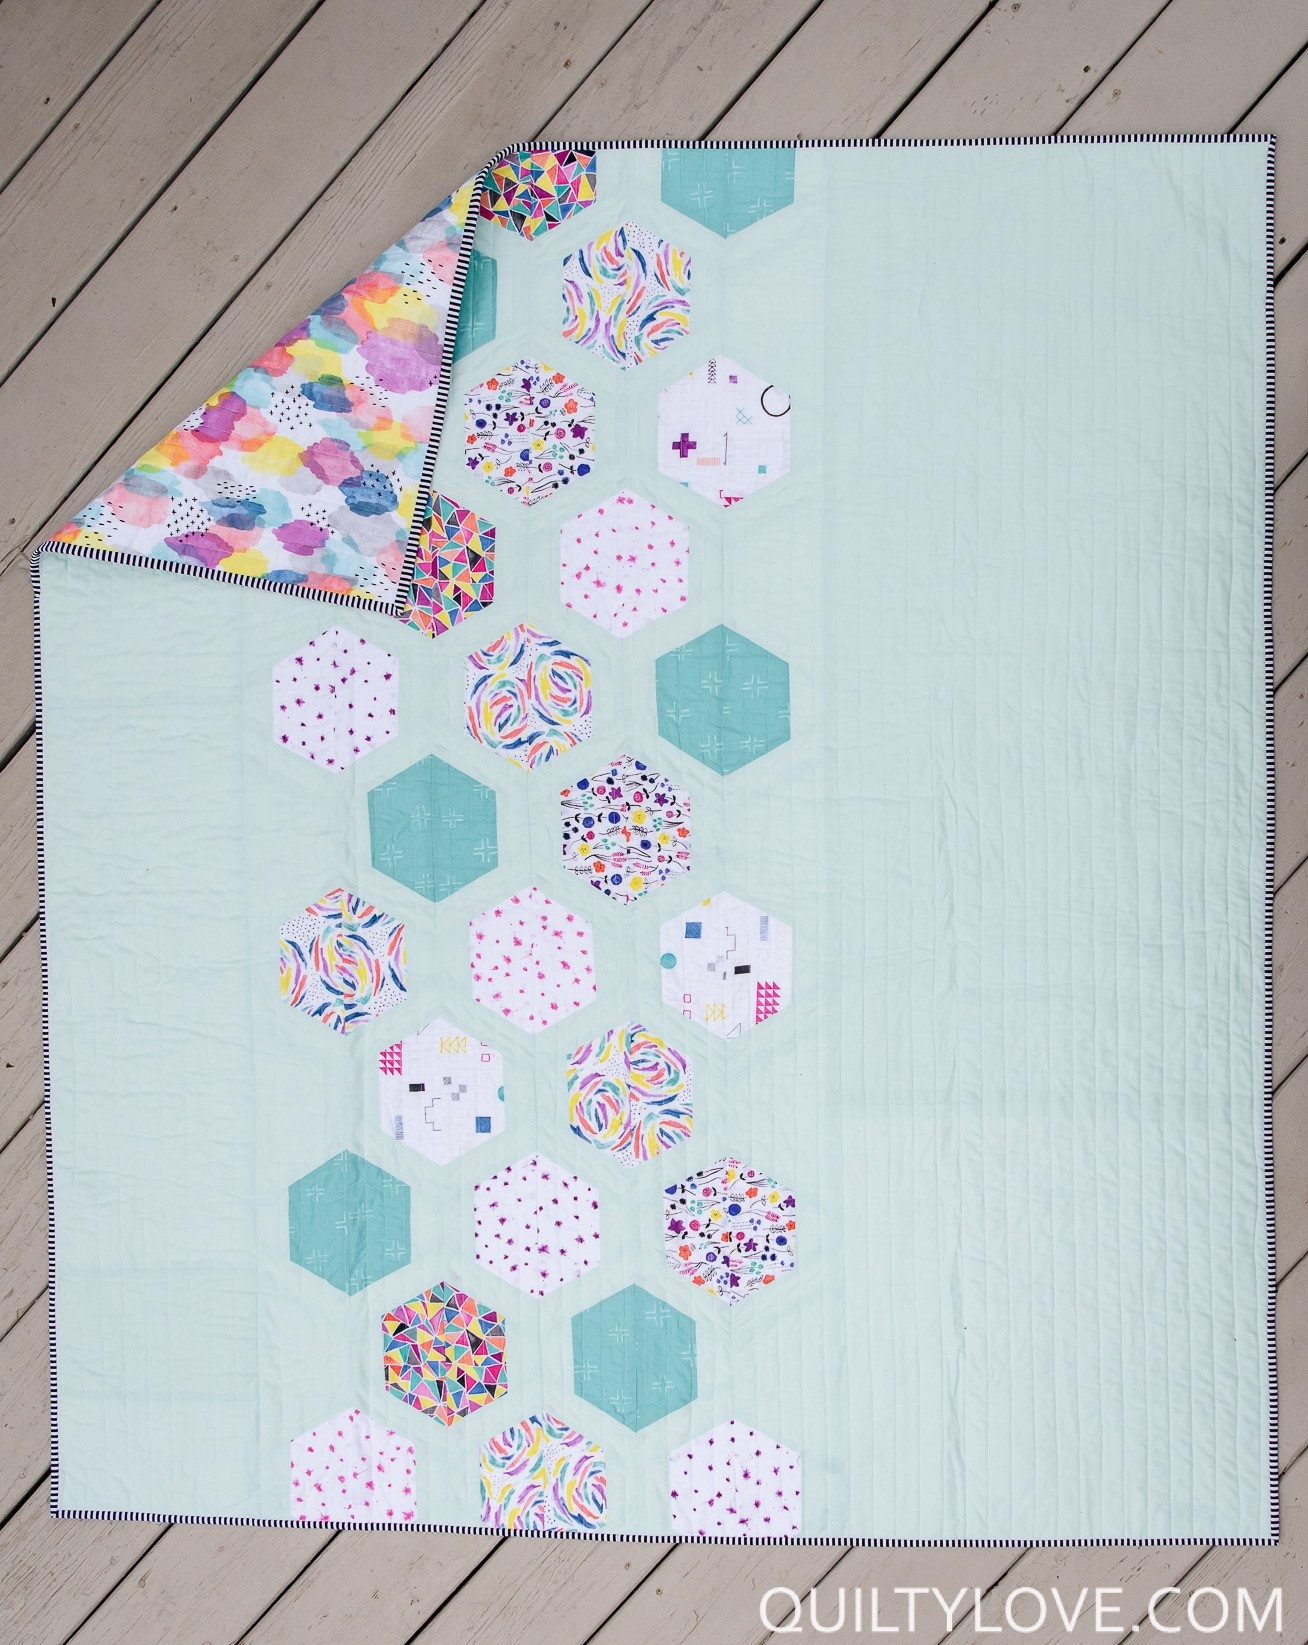 Quilty Love Hexie Framed Quilt Pattern by Quilty Love